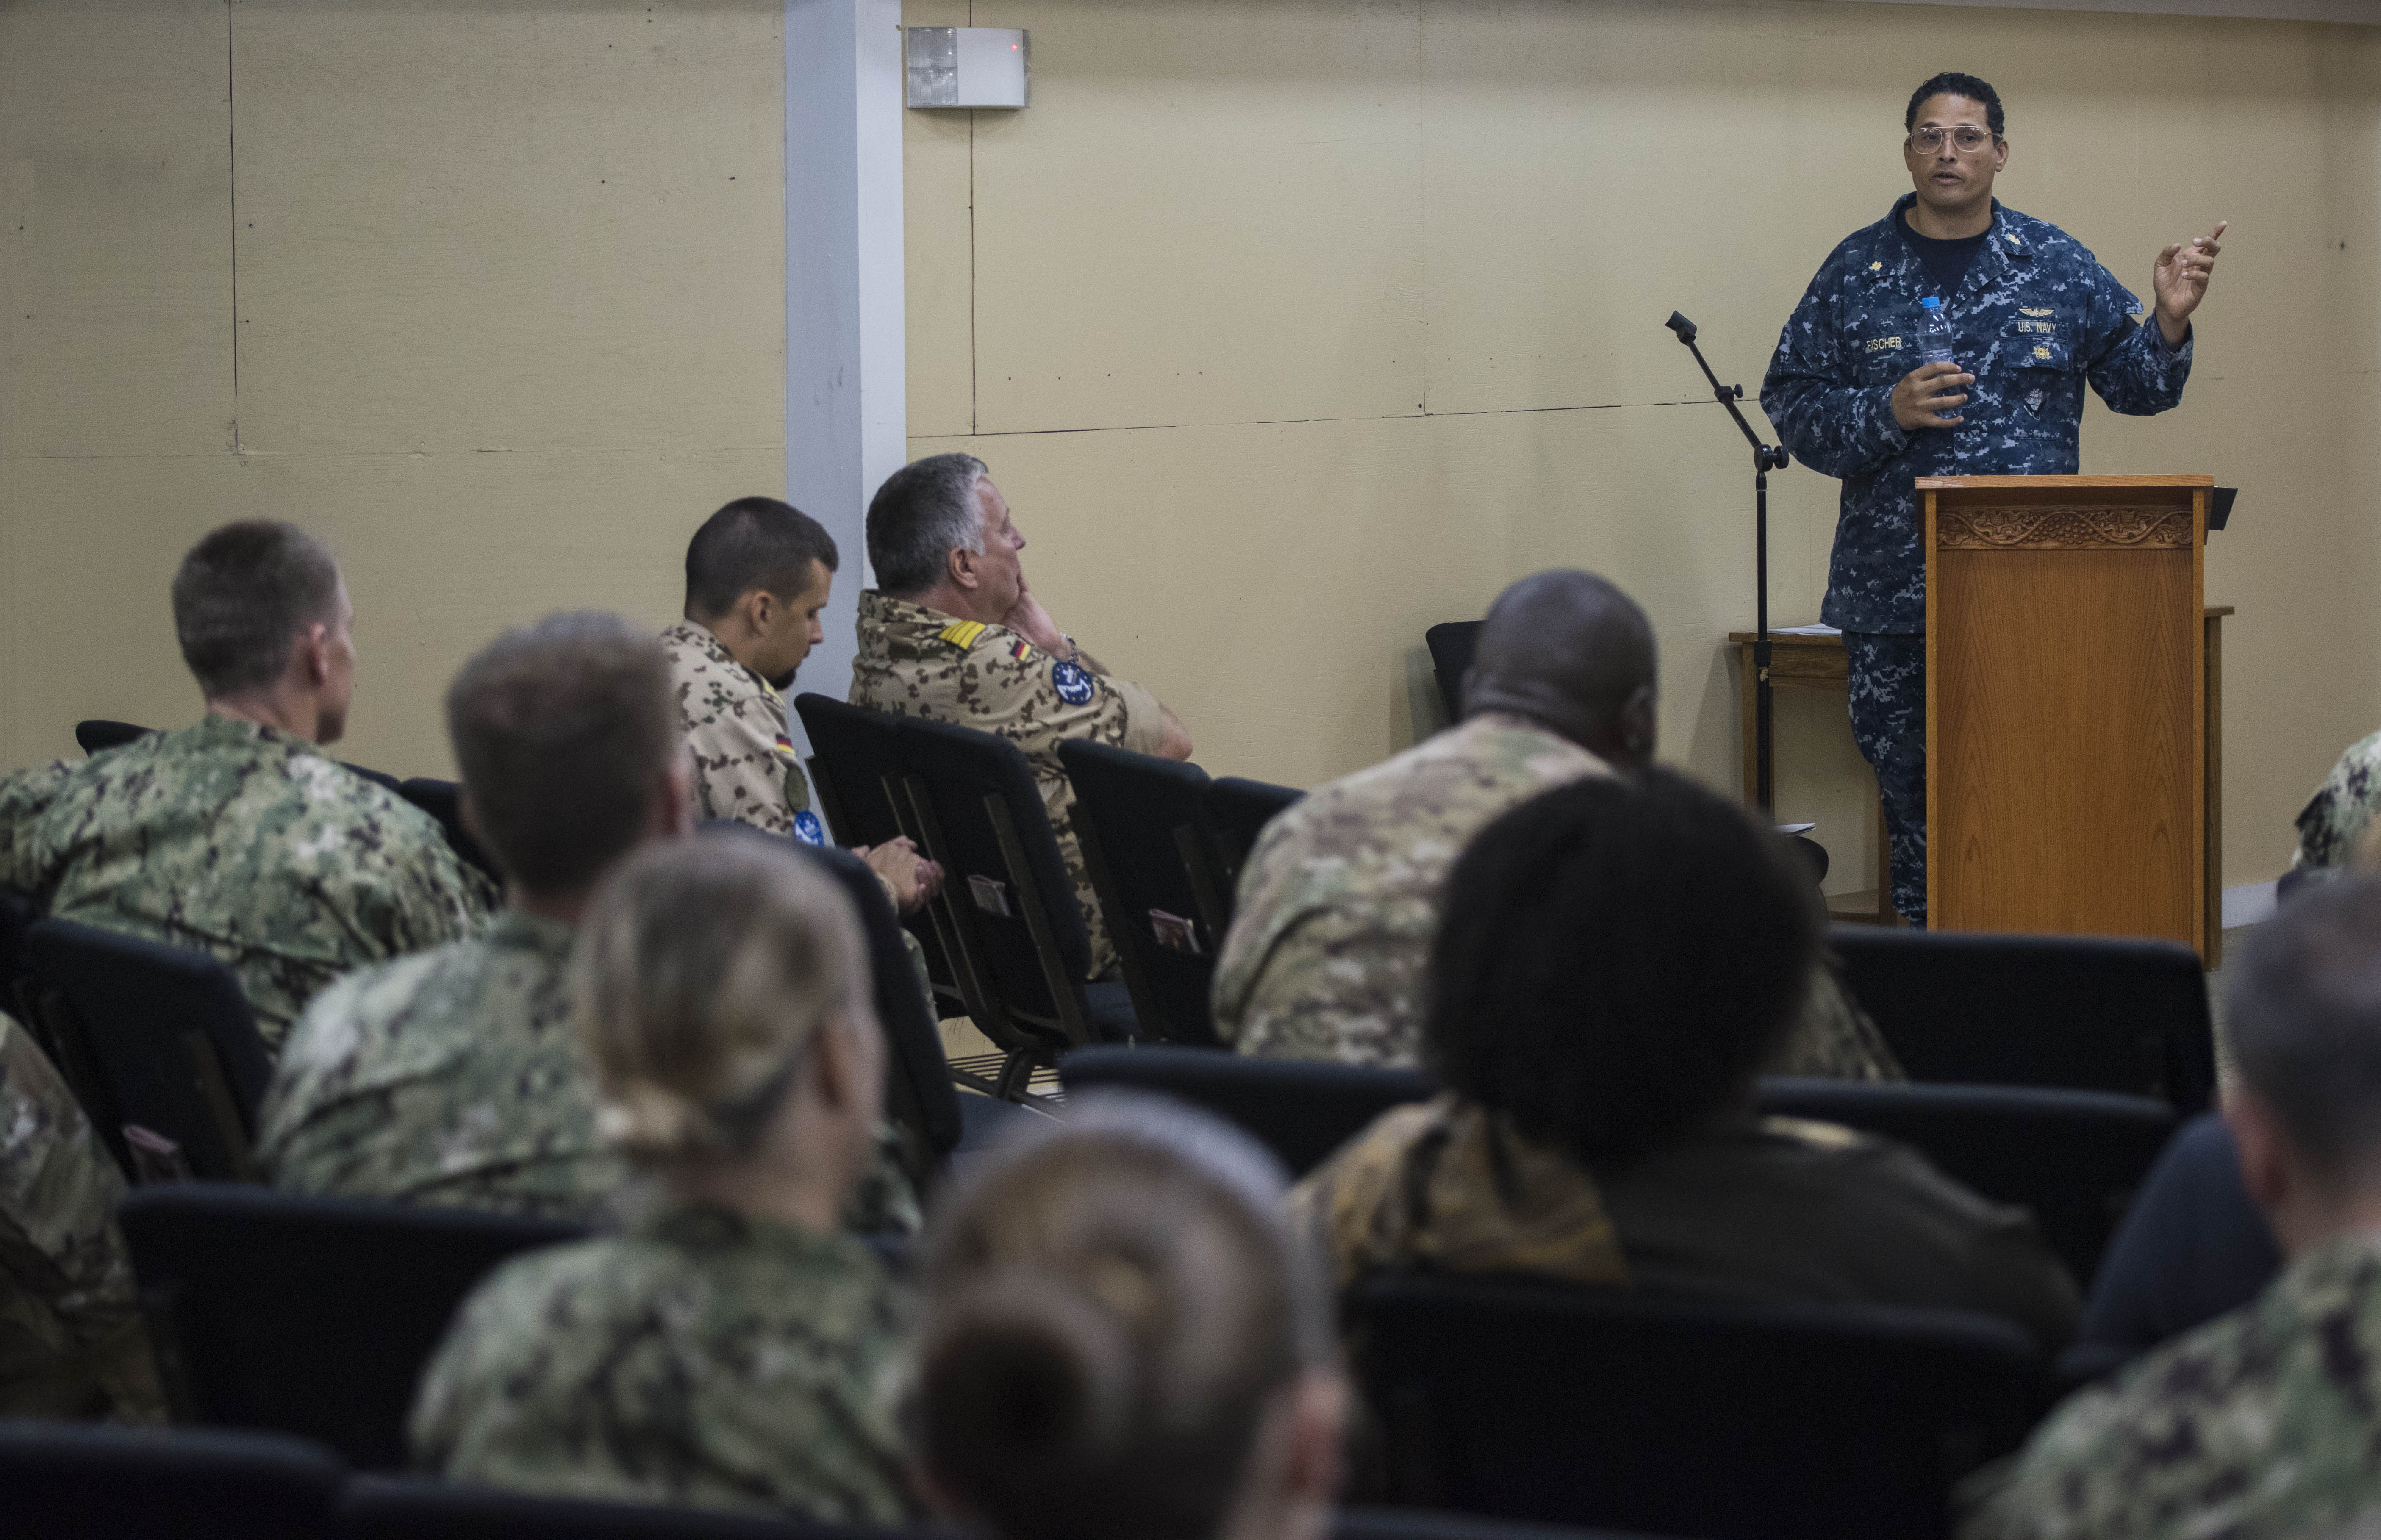 U.S. Navy Lt. Cmdr. Stephen Fischer, a preventative medicine physician from Walter Reed National Military Medical Center, speaks to other medical professionals at a Military Tropical Medicine Course organized by the Combined Joint Task Force – Horn of Africa Surgeon Cell and the Navy Medicine Professional Development Center at Camp Lemonnier, Djibouti, Nov. 14, 2017. Medical professionals from across the U.S. military services, foreign militaries and local community joined together Nov. 14 to 16 to discuss challenges posed to medical personnel providing care for troops operating within the Horn of Africa and the East African region. (U.S. Air National Guard photo by Staff Sgt. Allyson L. Manners)